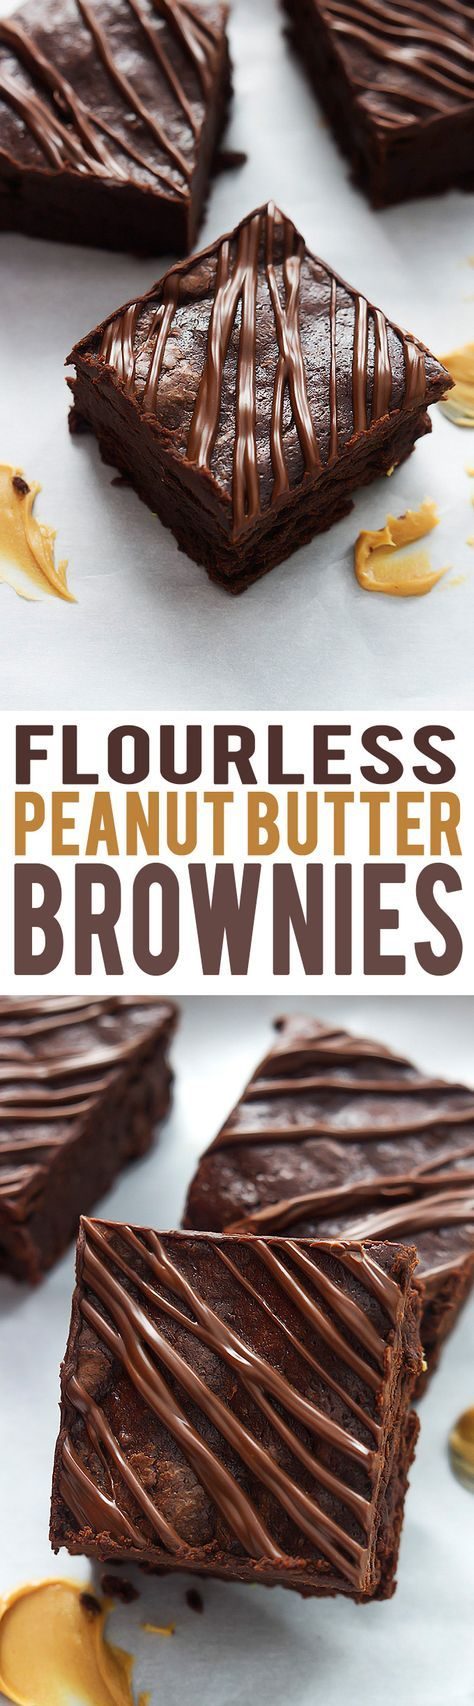 Super fudgy Flourless Peanut Butter Brownies! | lecremedelacrumb.com